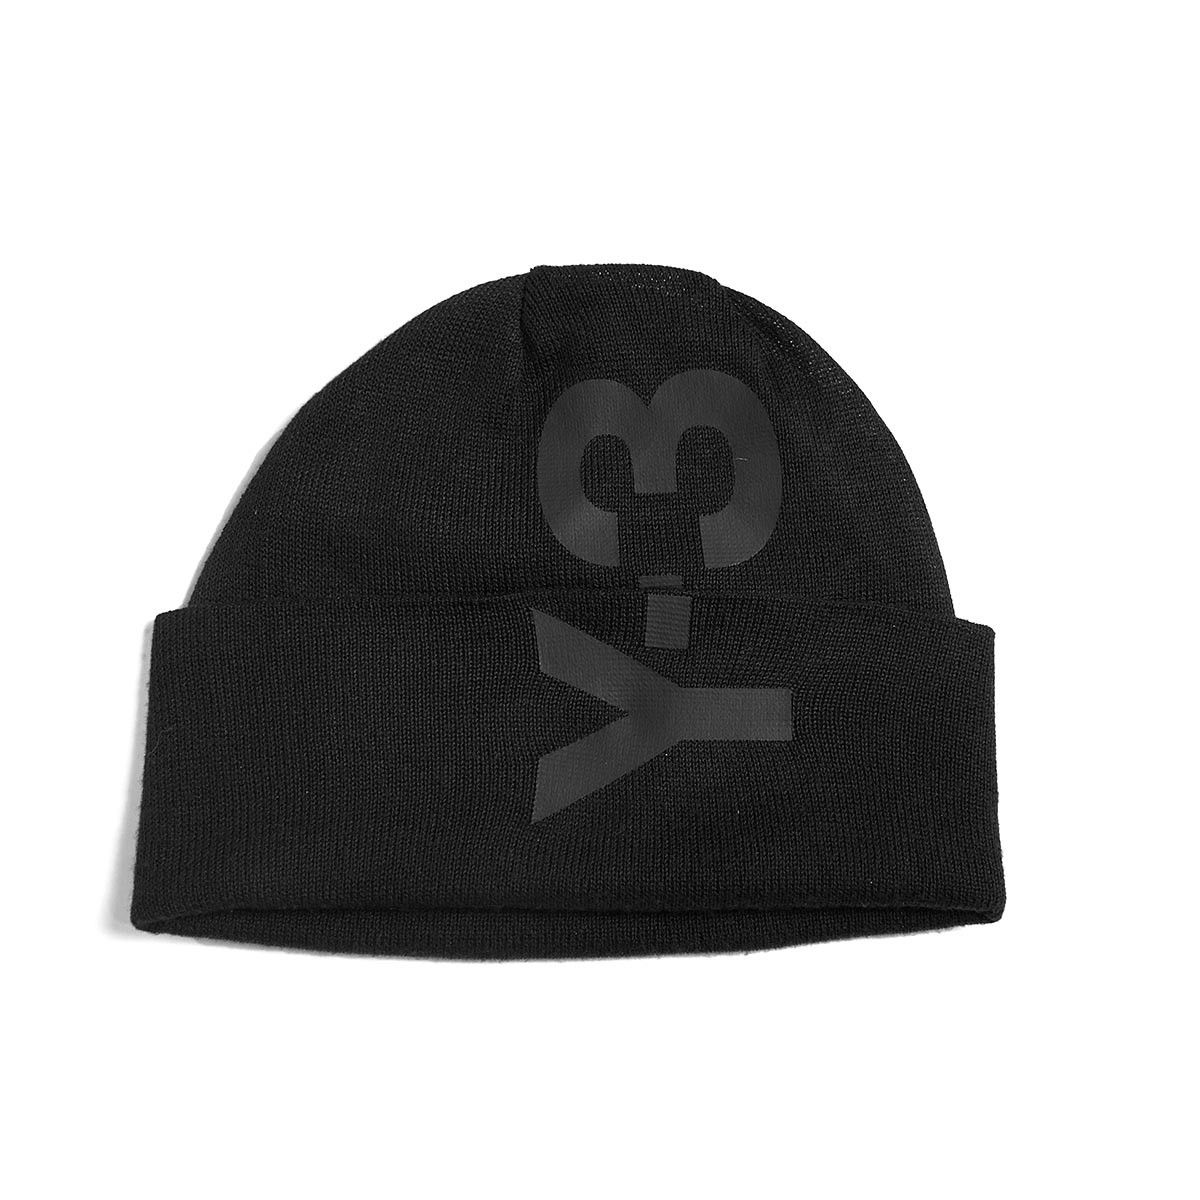 Logo beanie from the F W2016-17 Y-3 by Yohji Yamamoto collection in ... 155989b523977